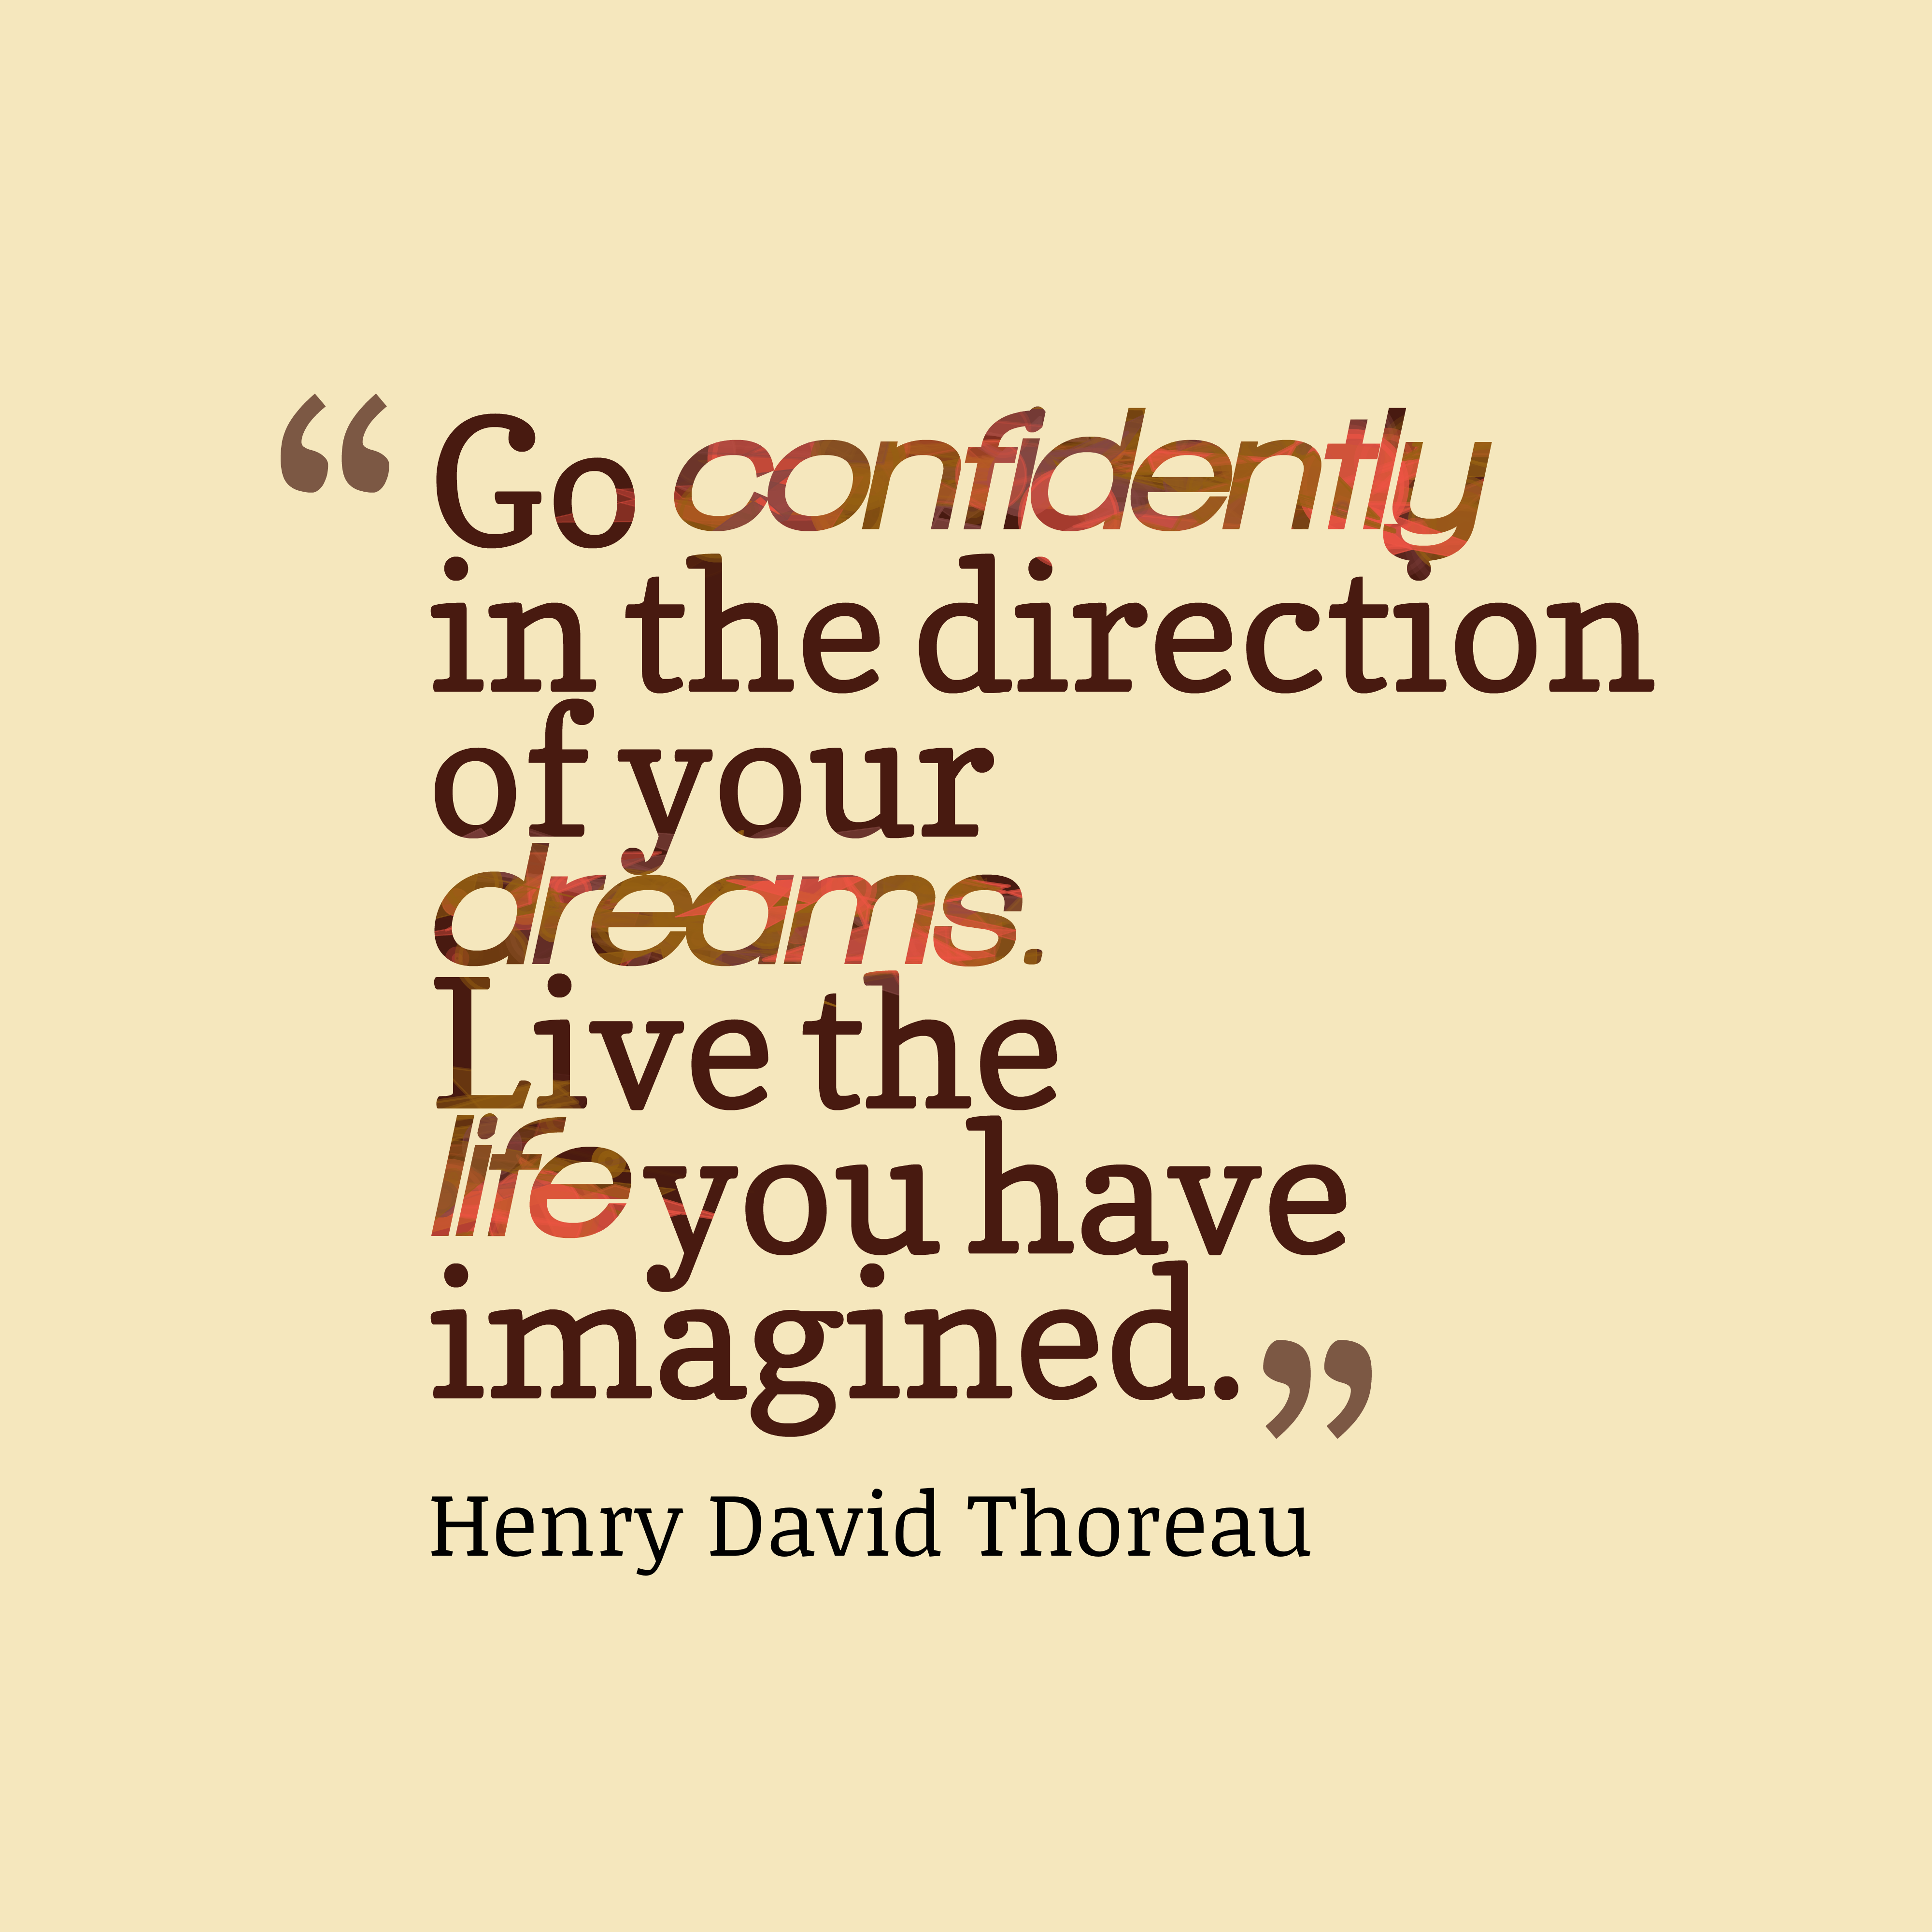 Henry David Thoreau Quote About Life